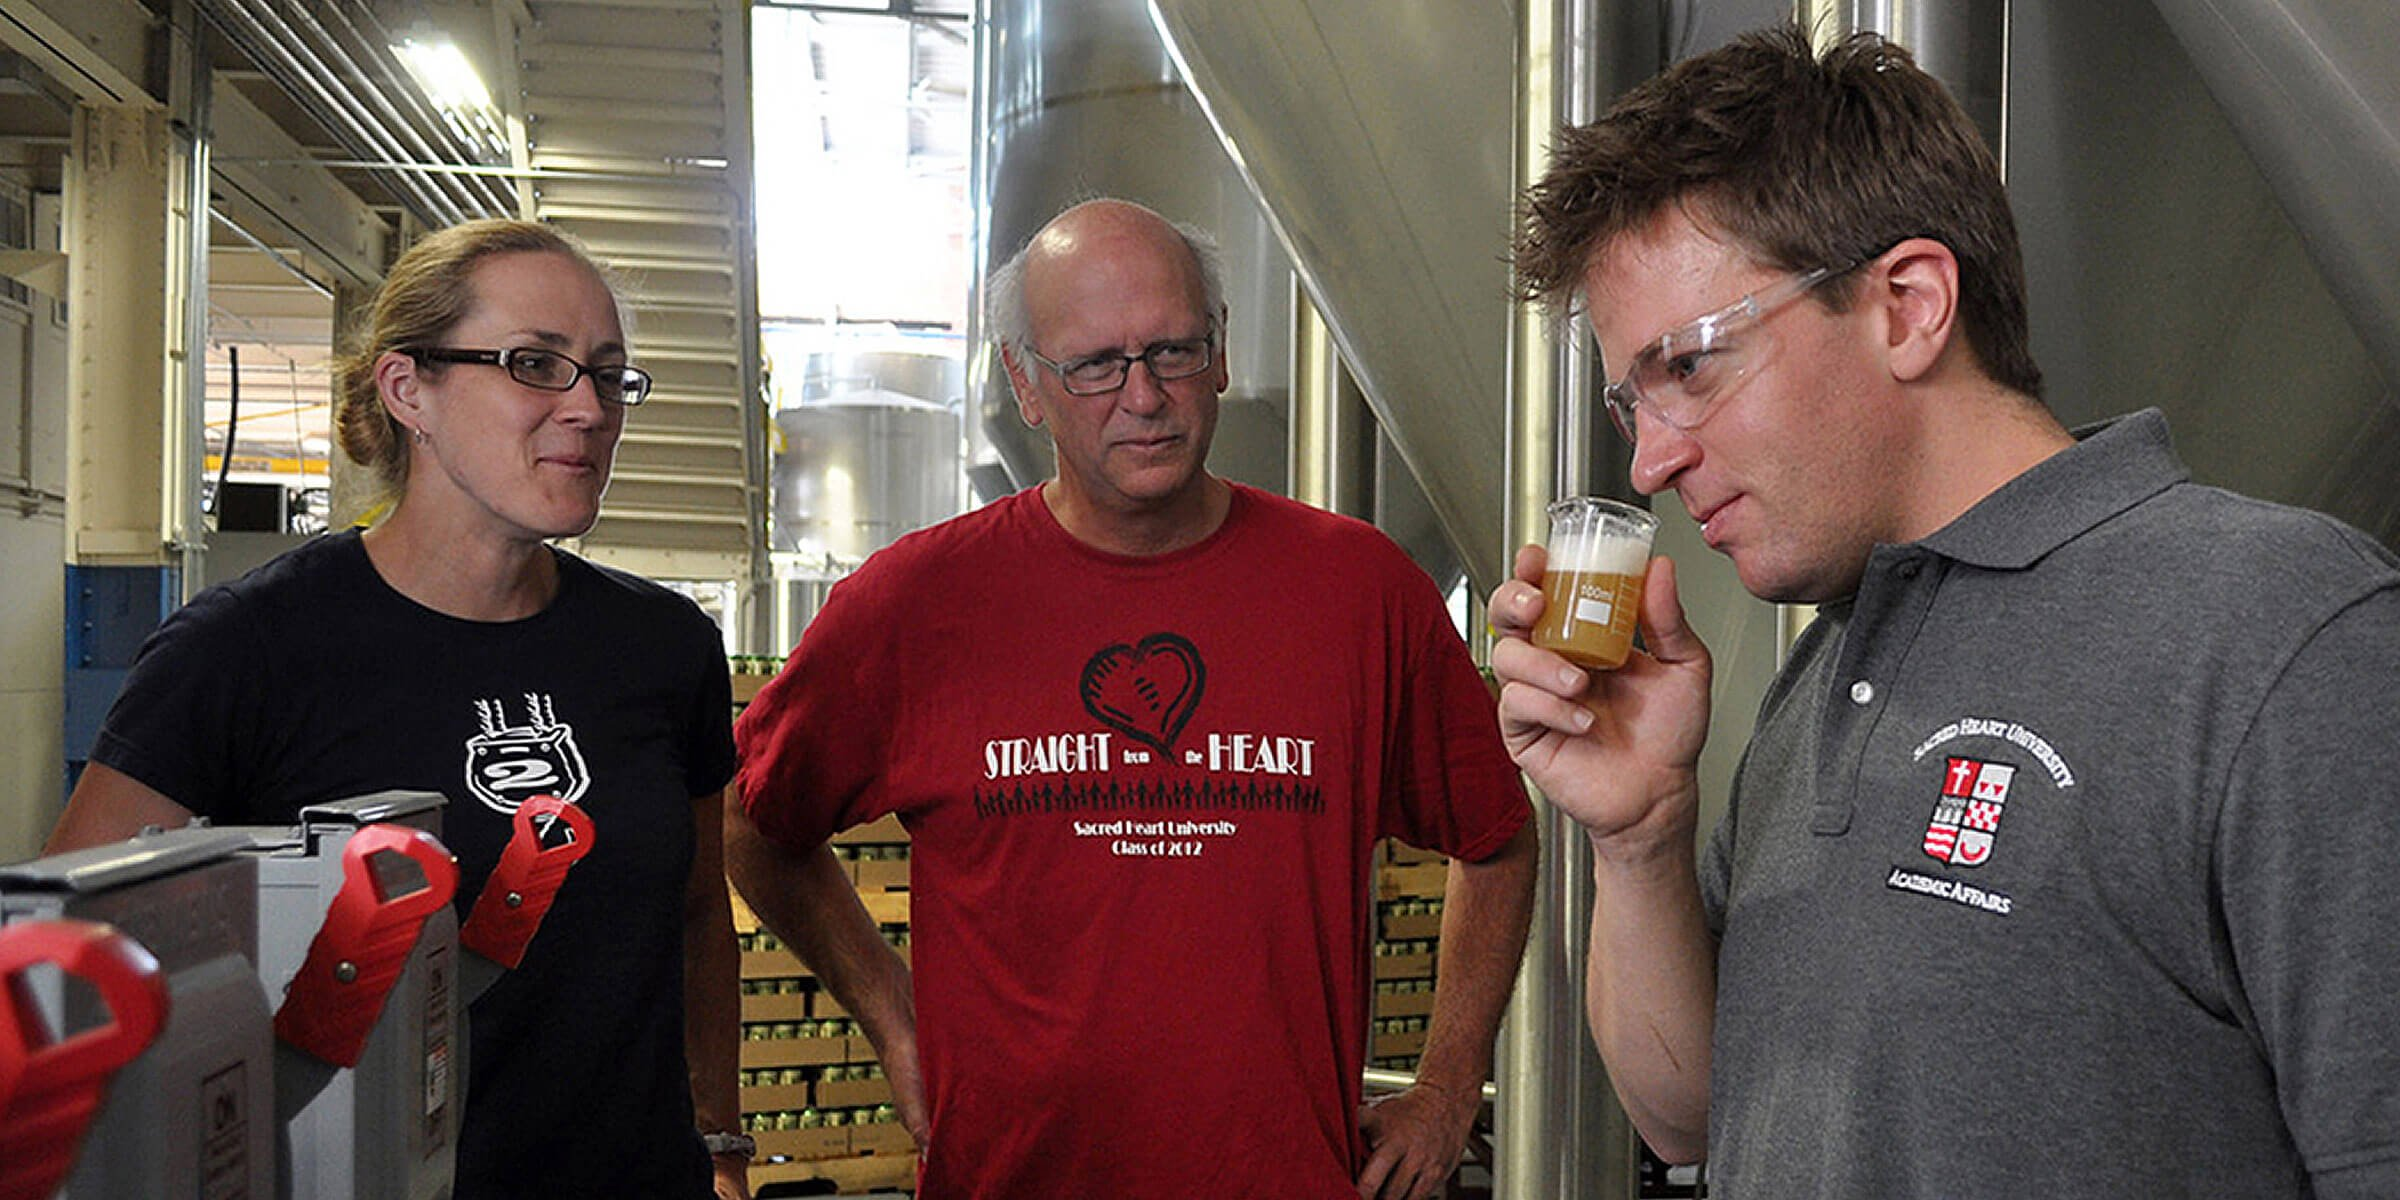 Sacred Heart University will start a new brewing science certificate program in May for people looking to start or advance their careers in brewing.